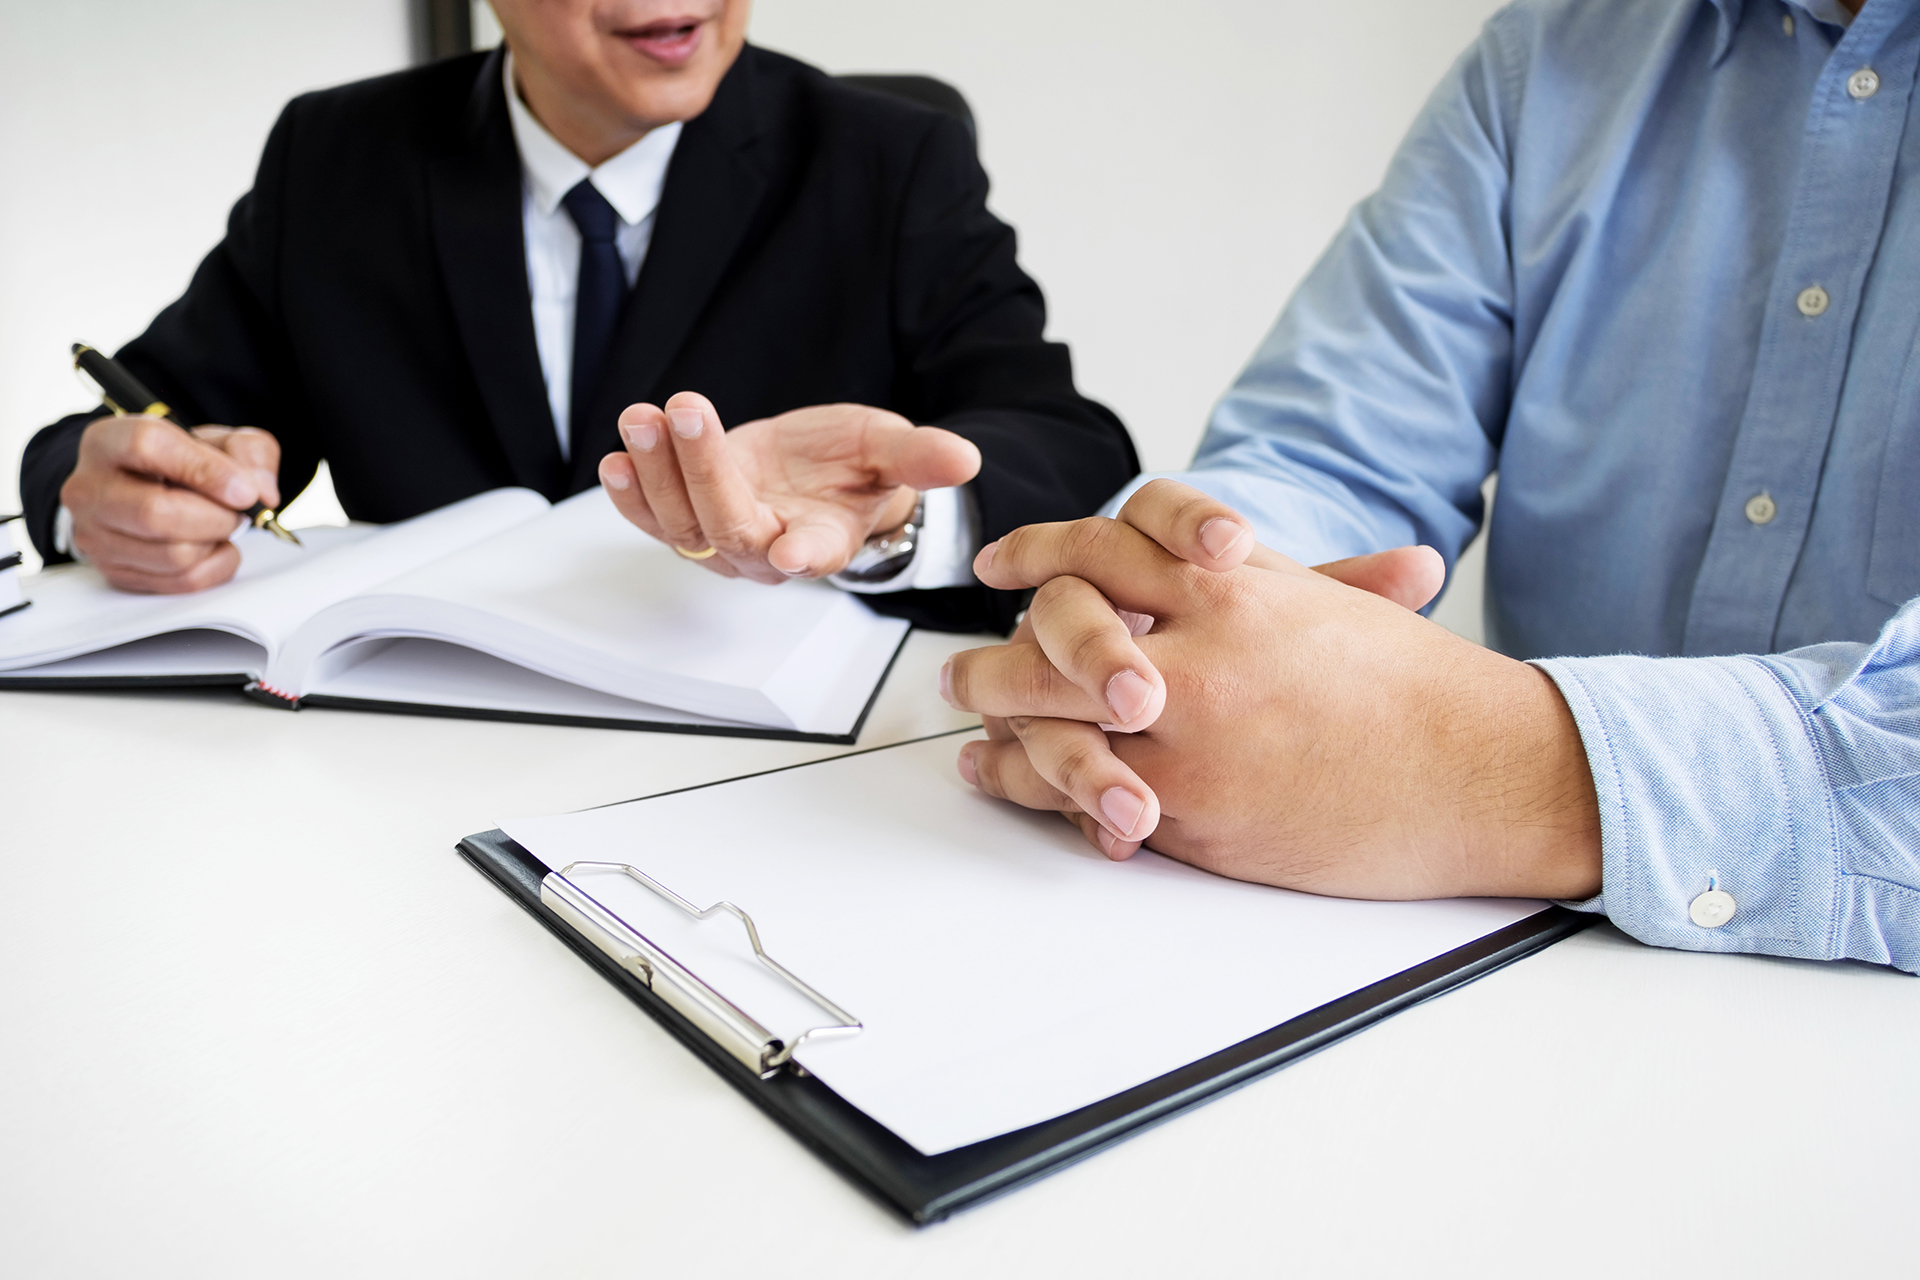 Hire Personalized Services of Building And Construction Lawyer